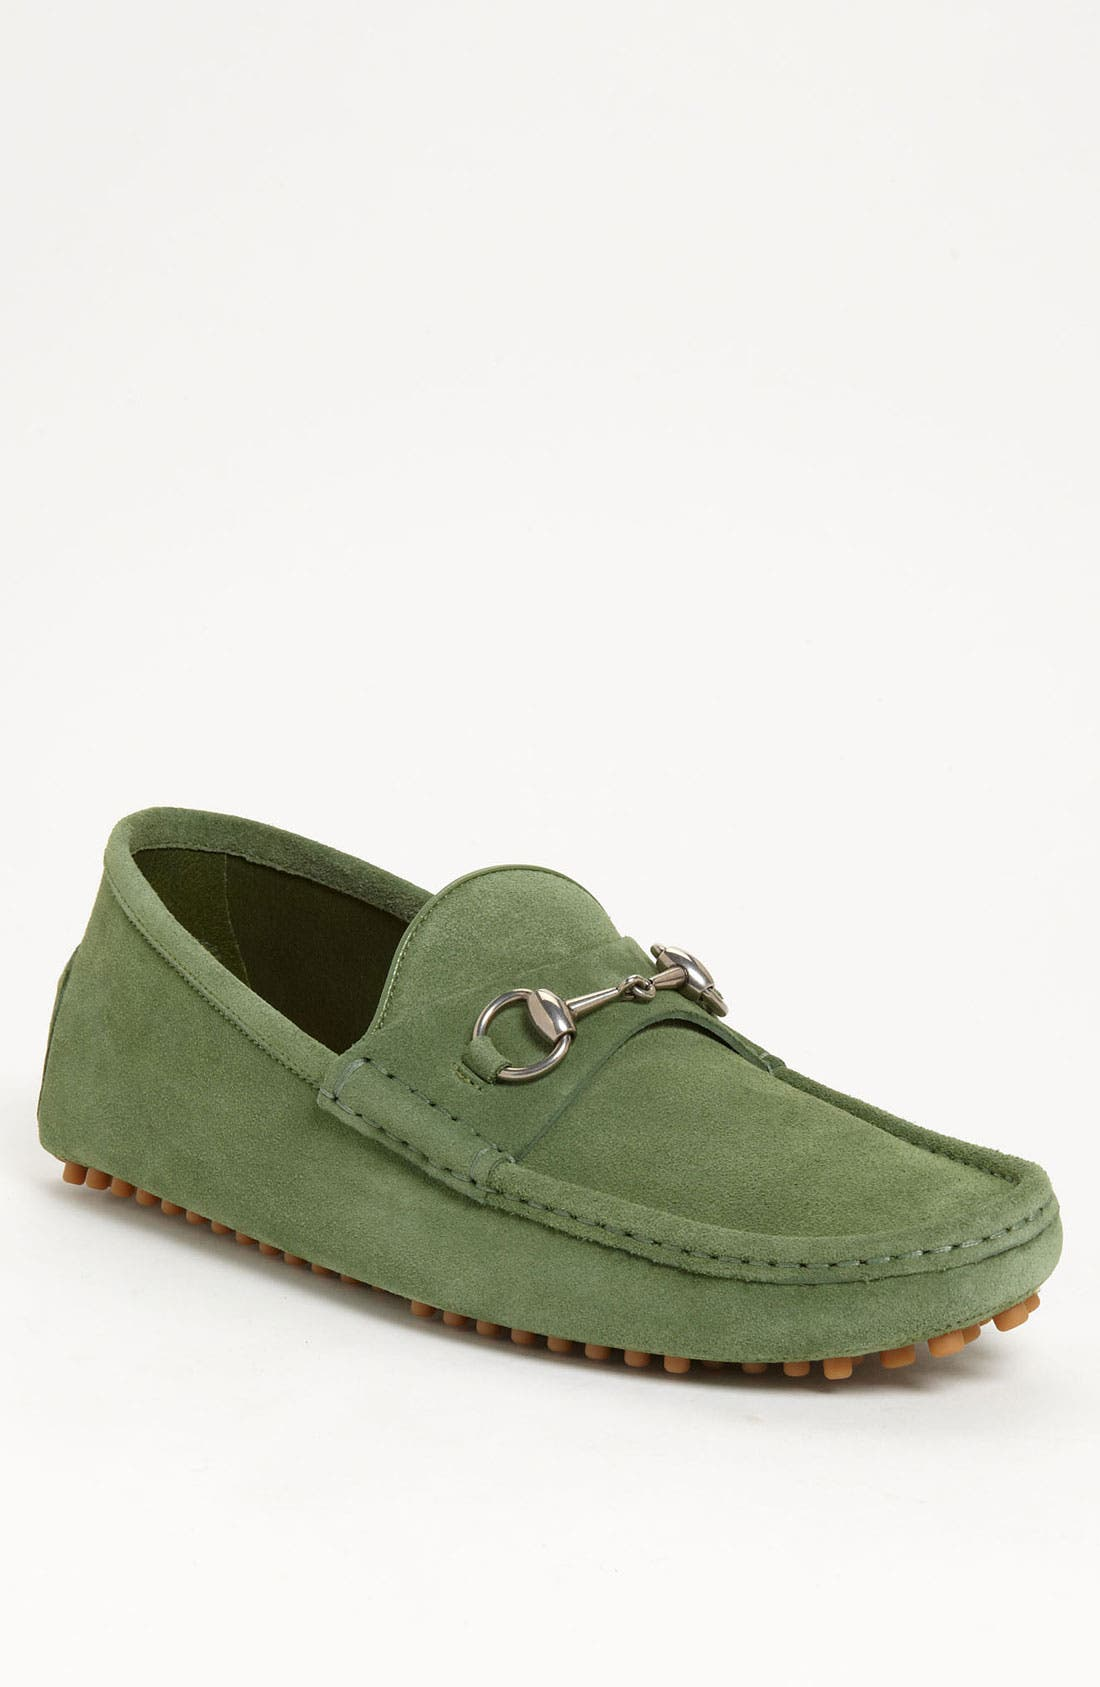 Alternate Image 1 Selected - Gucci 'Damo' Suede Driving Shoe